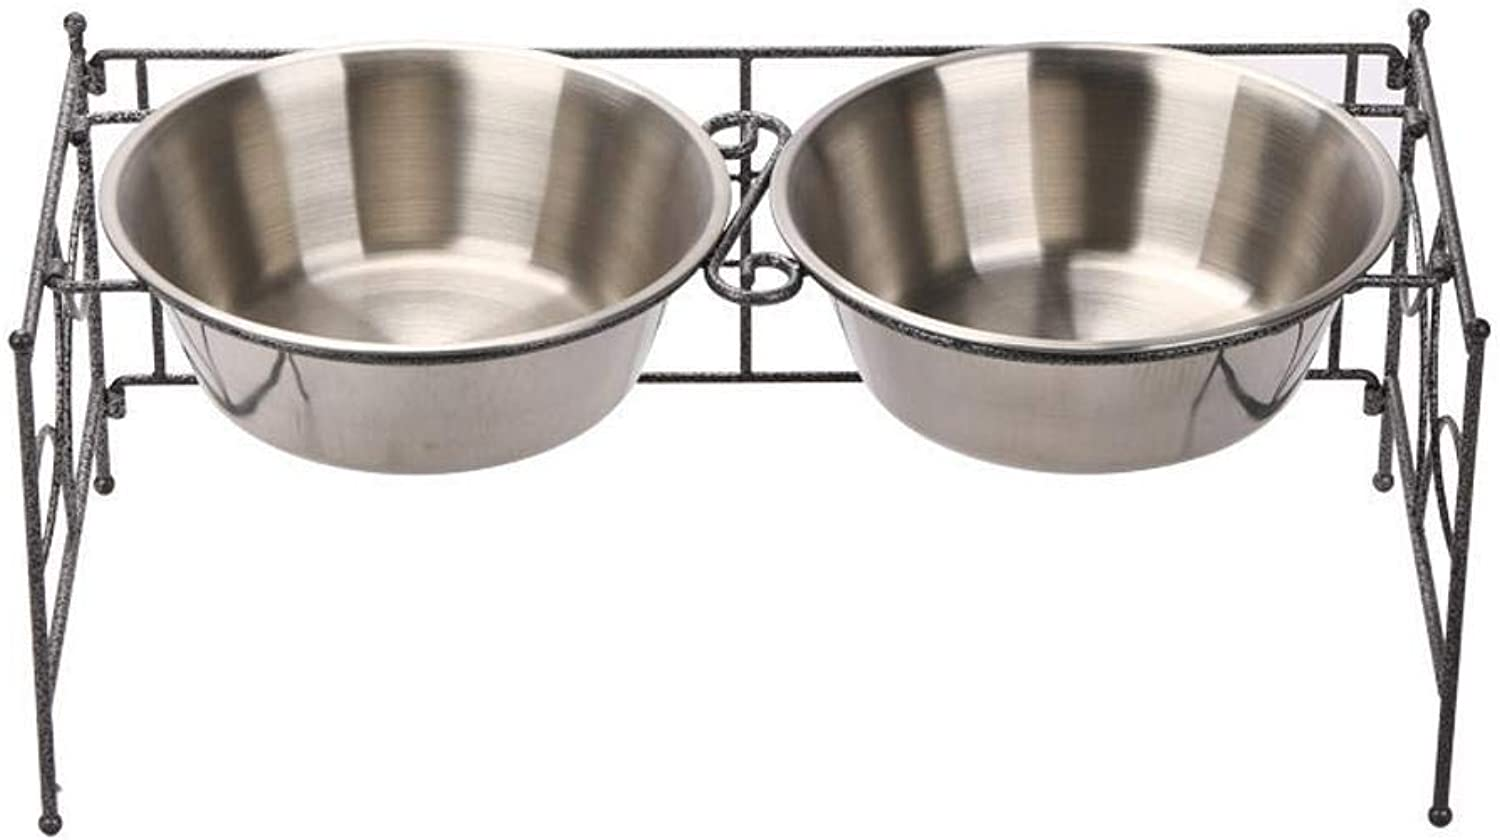 Dixinla Pet food bowl Pet stainless steel bracket water bowl fit not to bow cats dogs